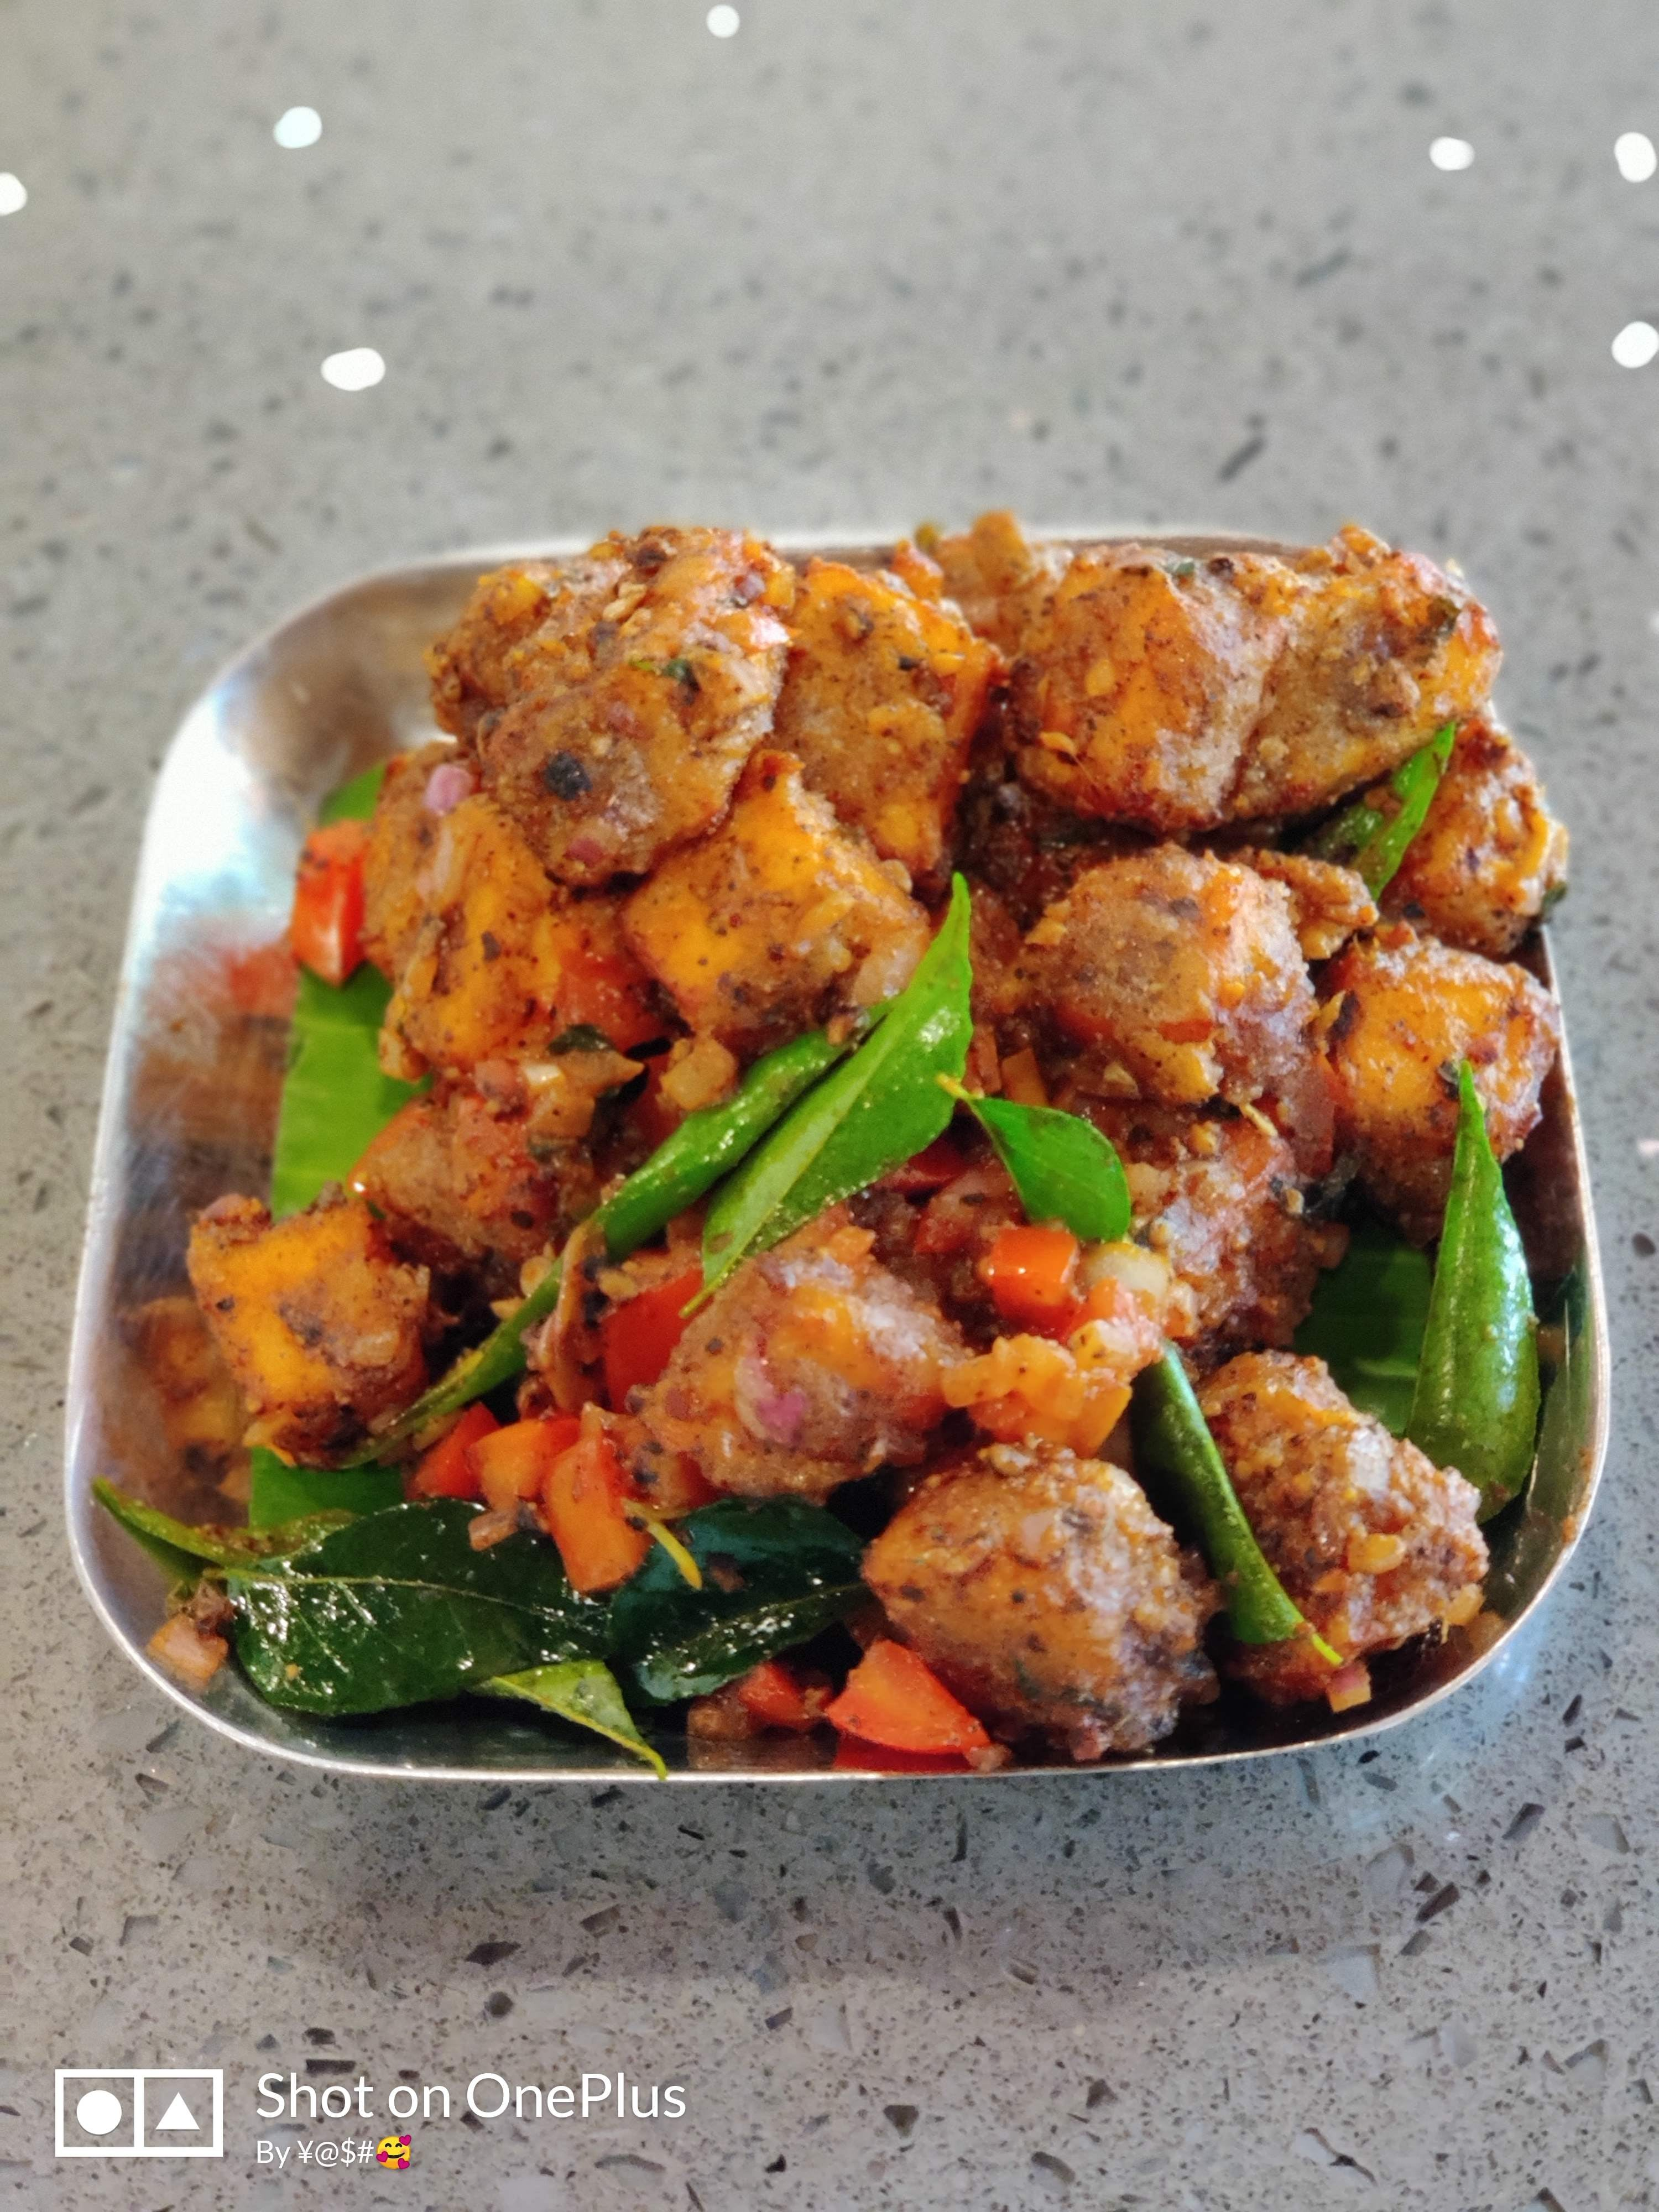 Dish,Food,Cuisine,Ingredient,Meat,Fried food,Produce,Recipe,Chicken 65,Salad